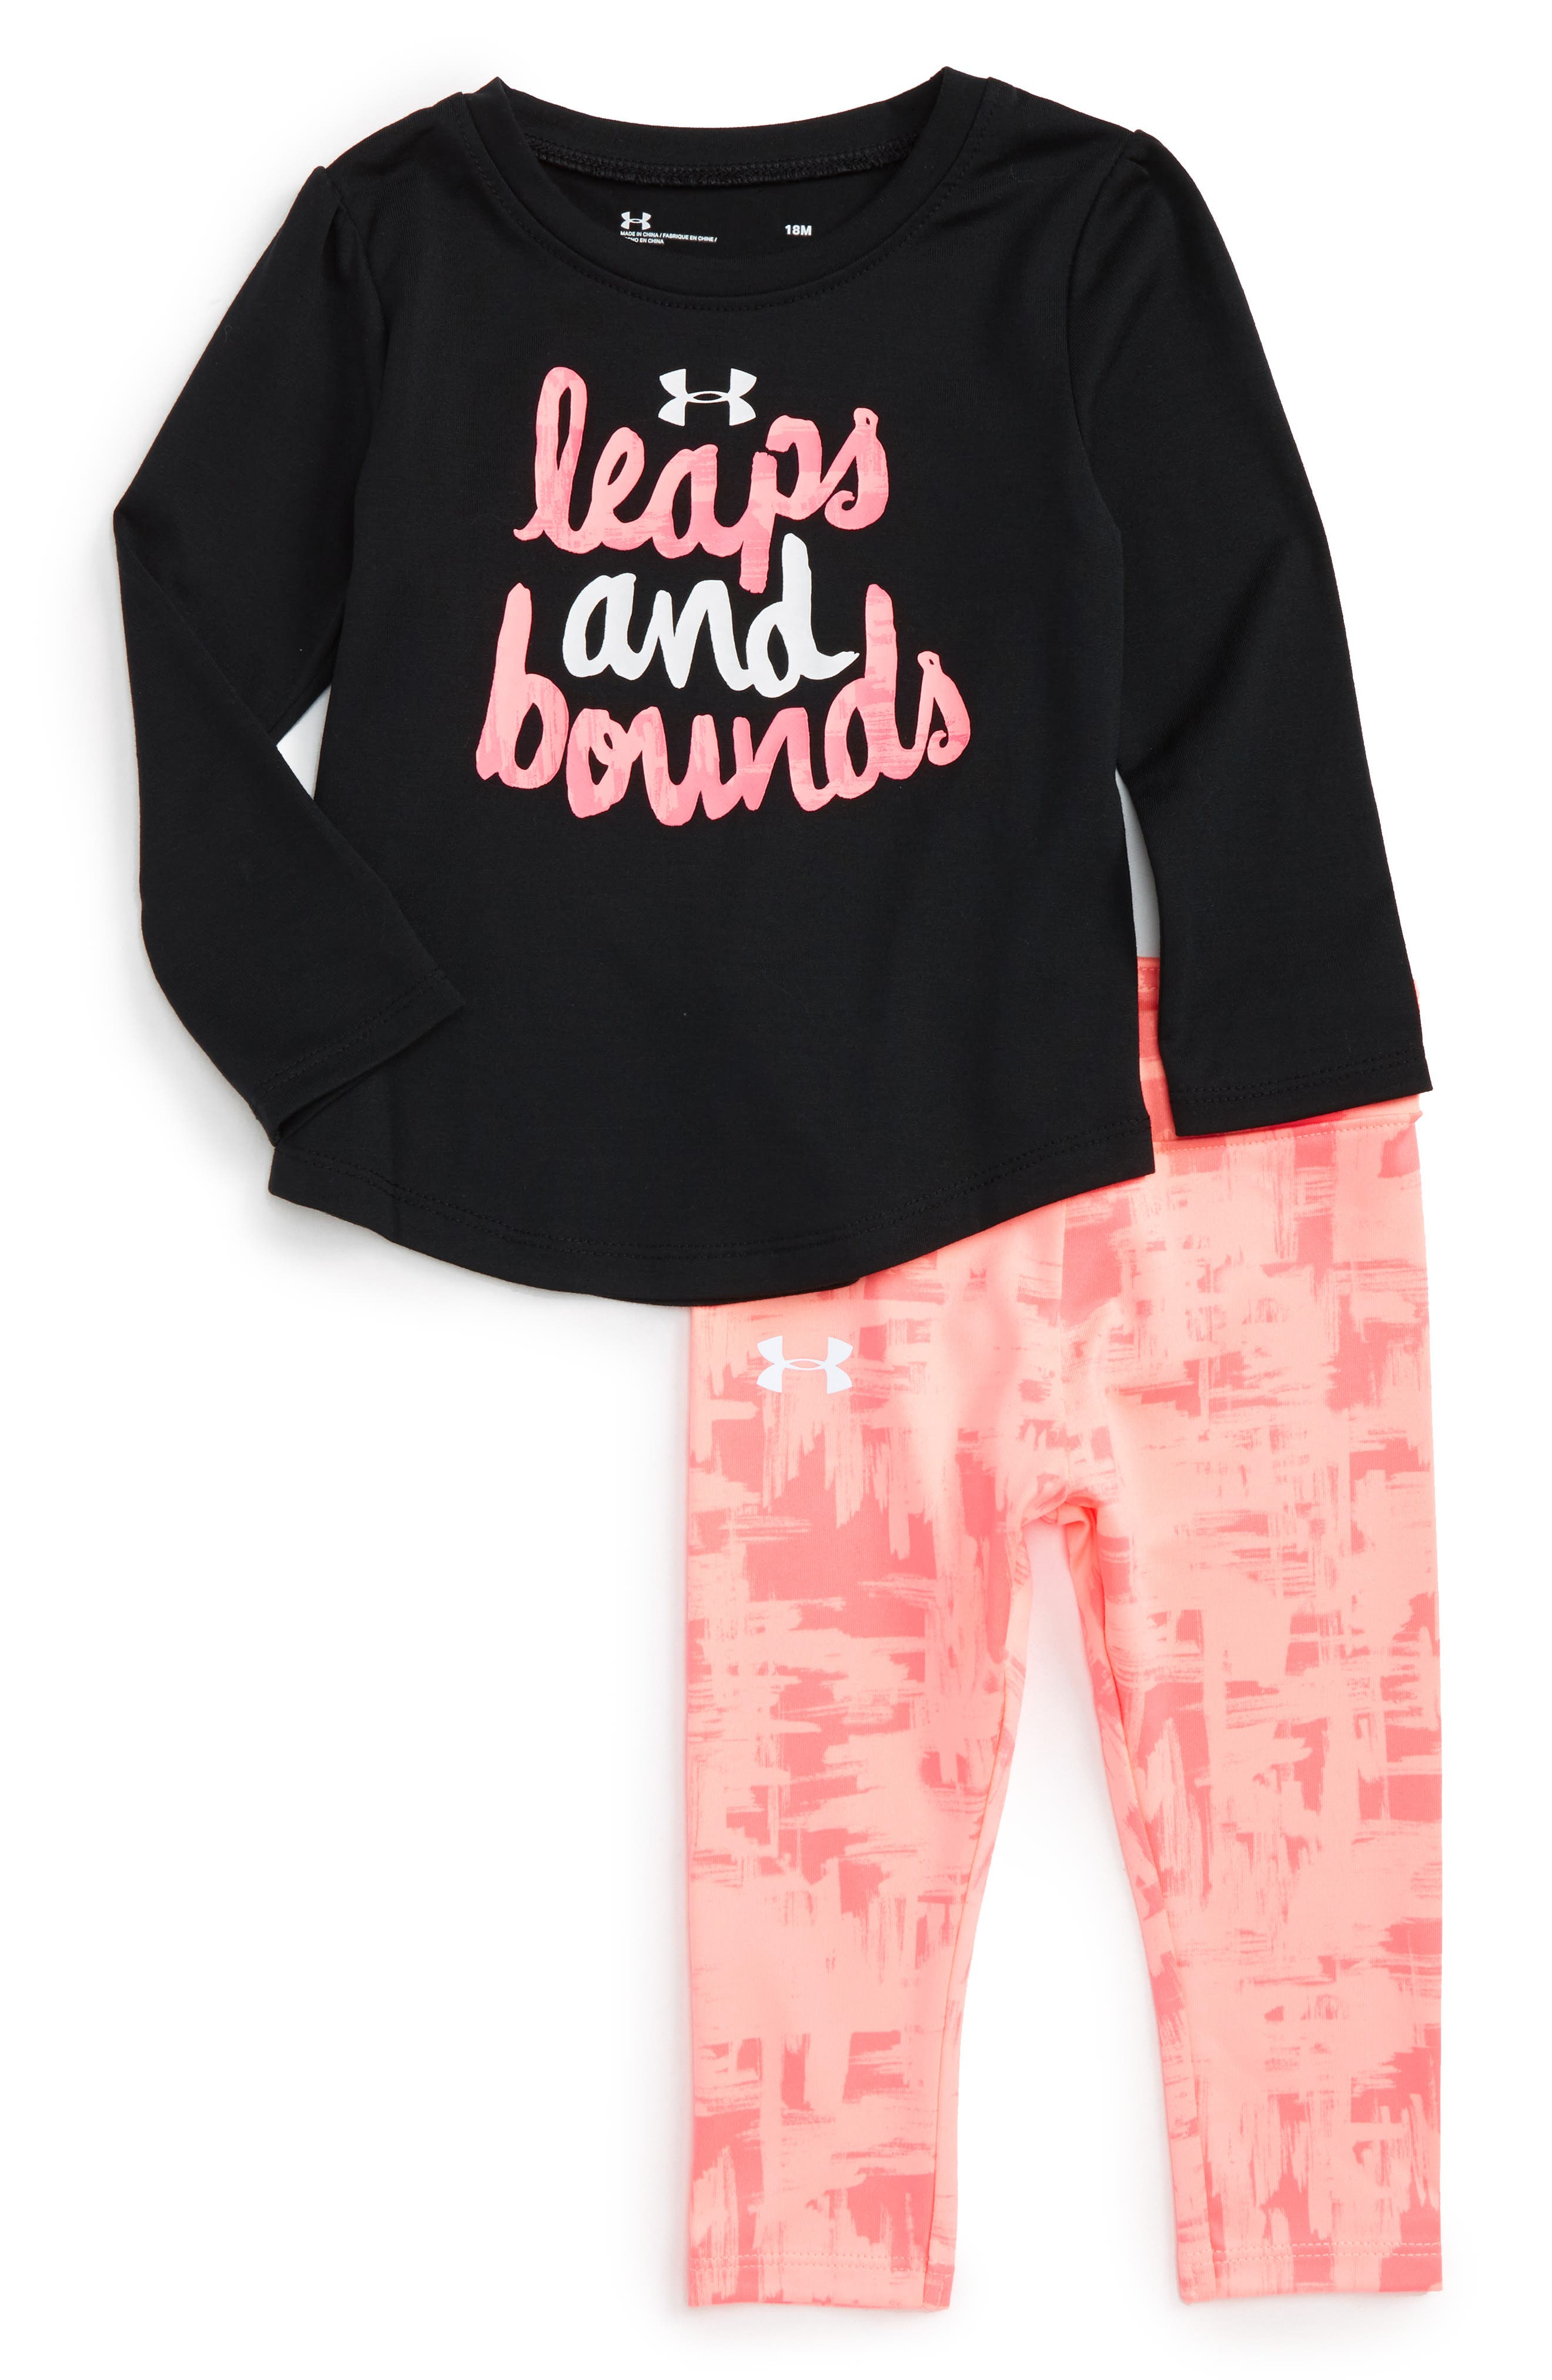 Main Image - Under Armour Leaps & Bounds Tee & Pants Set (Baby Girls)